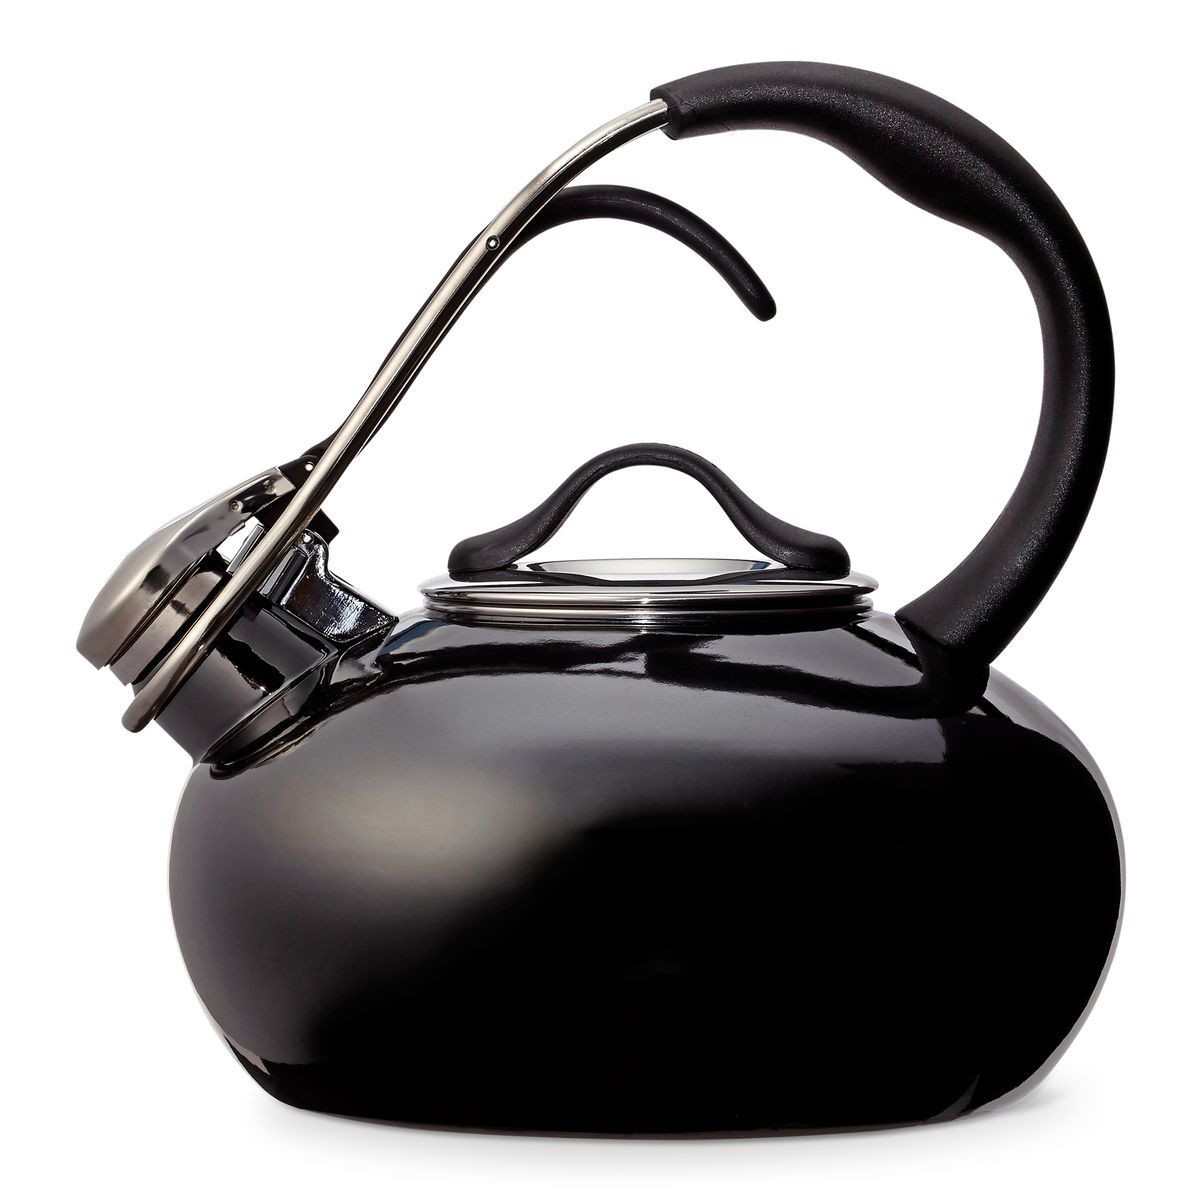 Functional and attractive, this great kettle lives up to your expectations from the moment you pick it up.